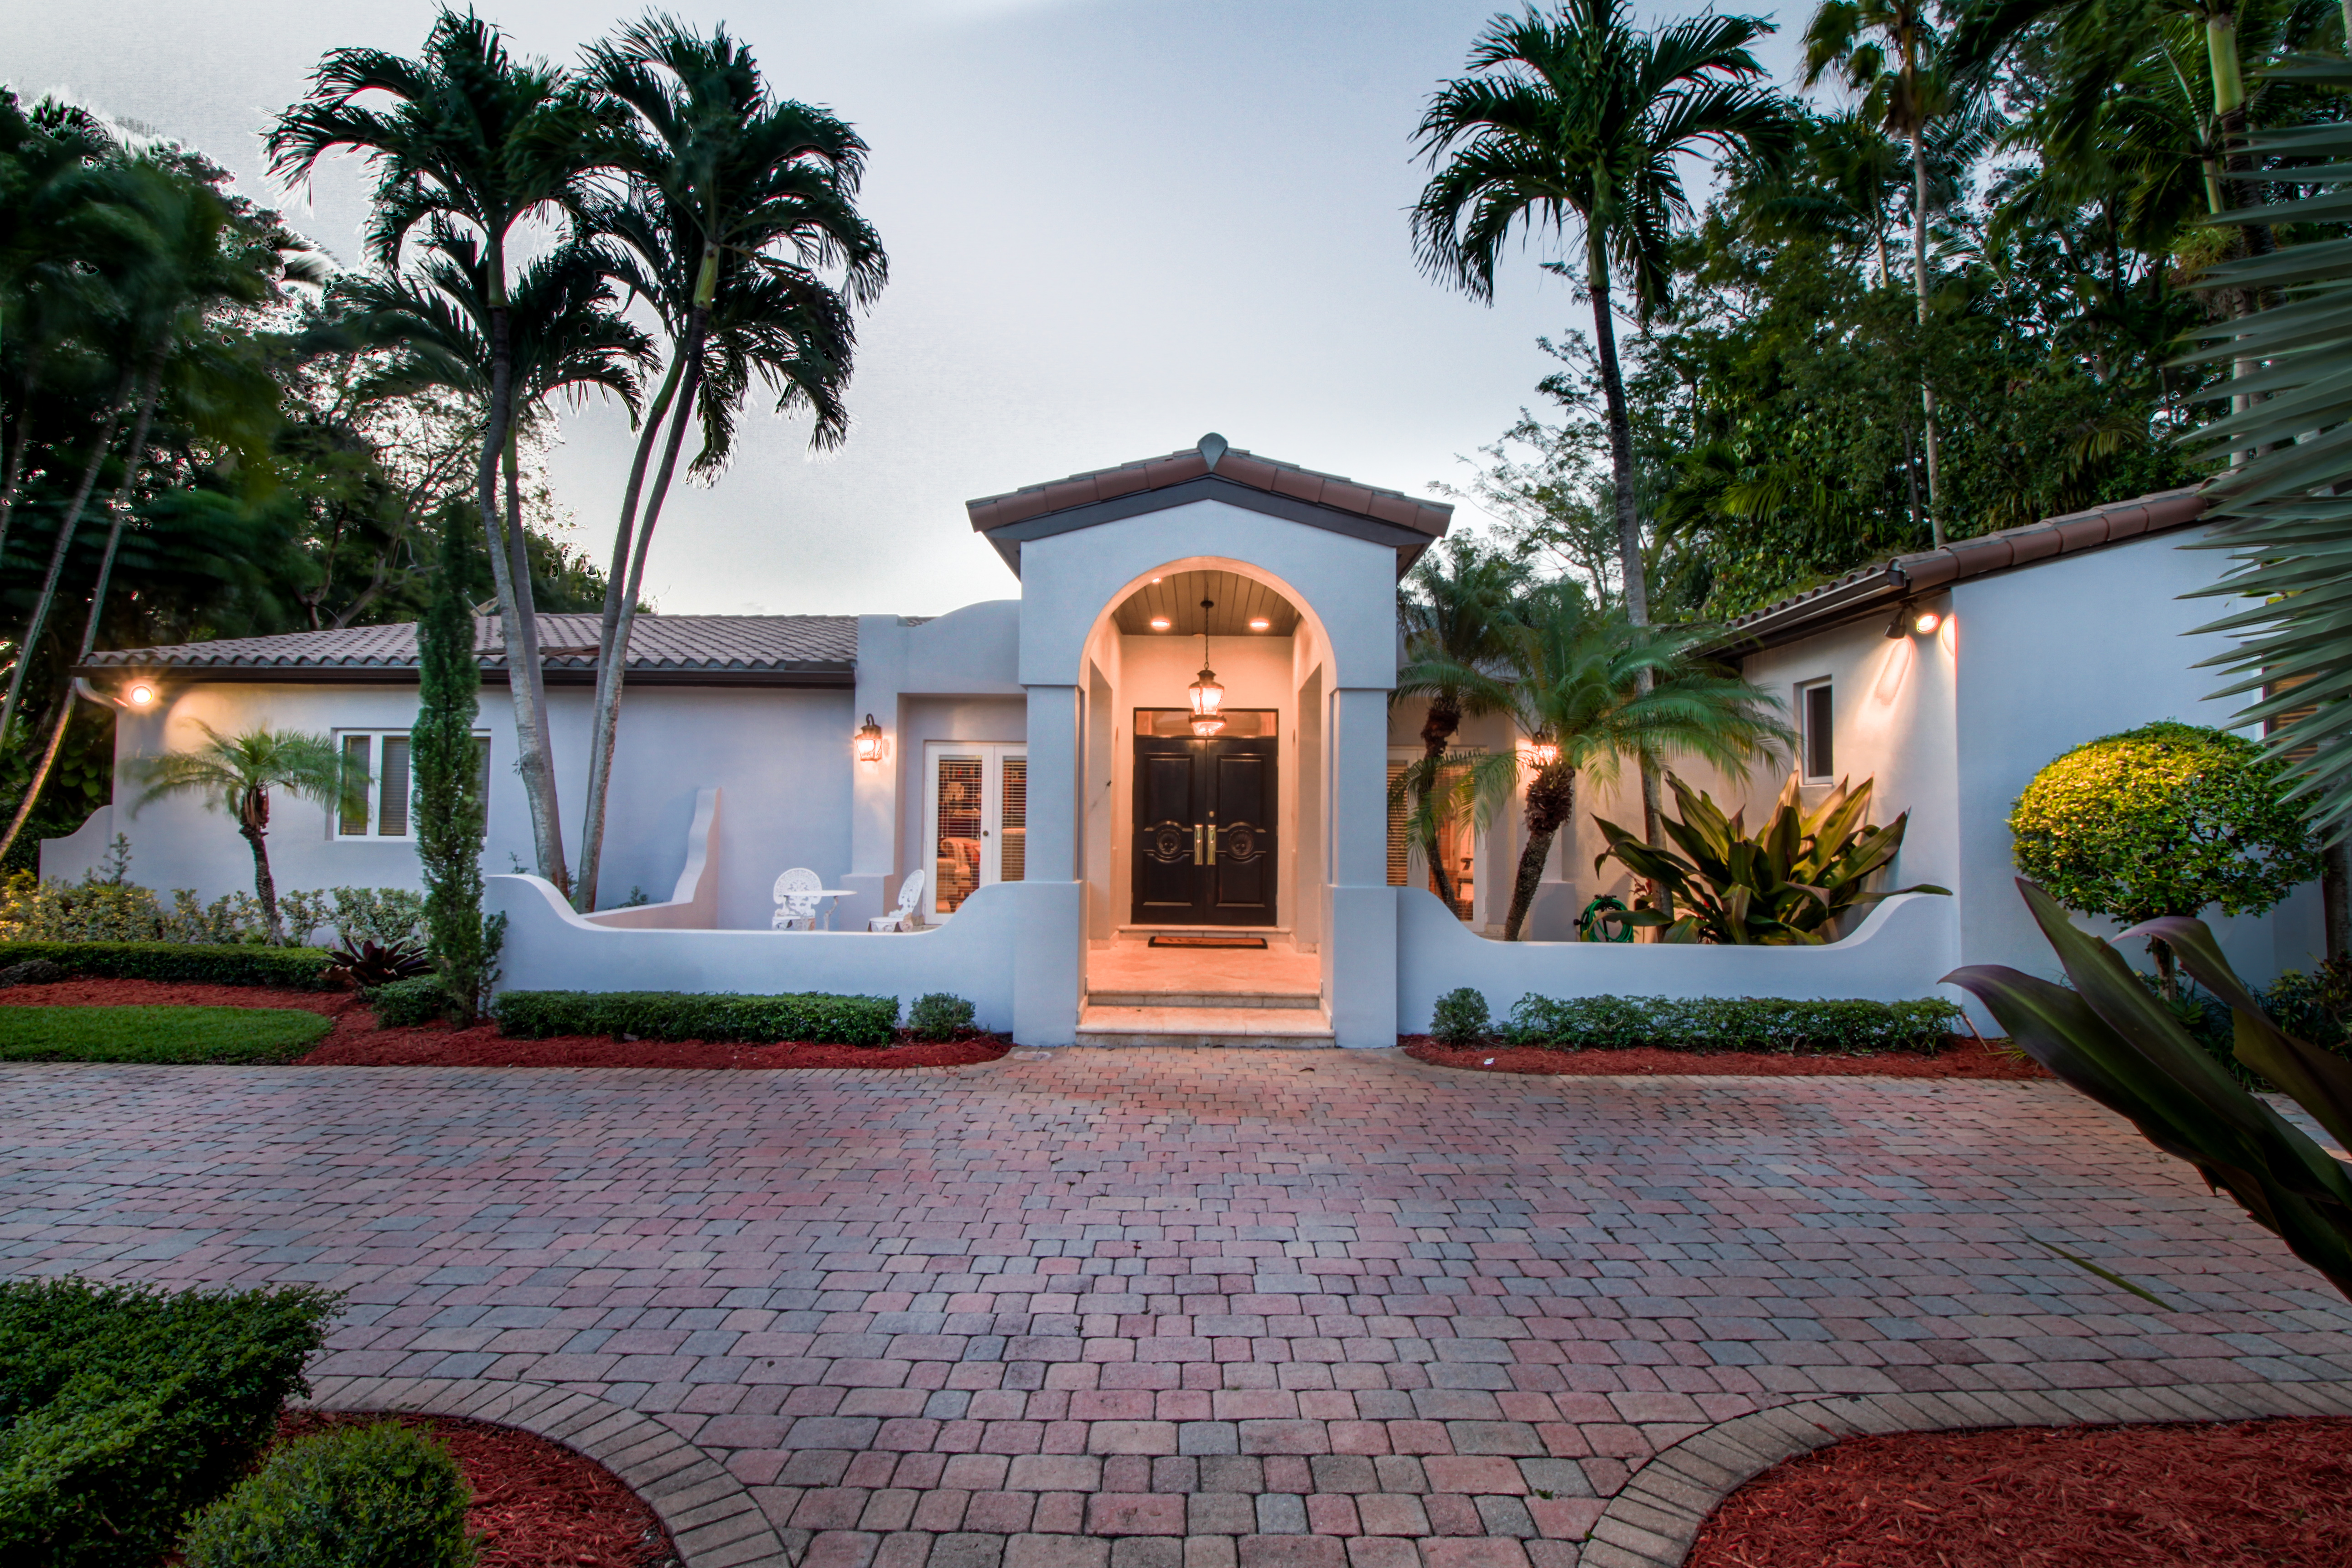 Single Family Home for Sale at 1551 Salvatierra Dr Coral Gables, Florida, 33134 United States